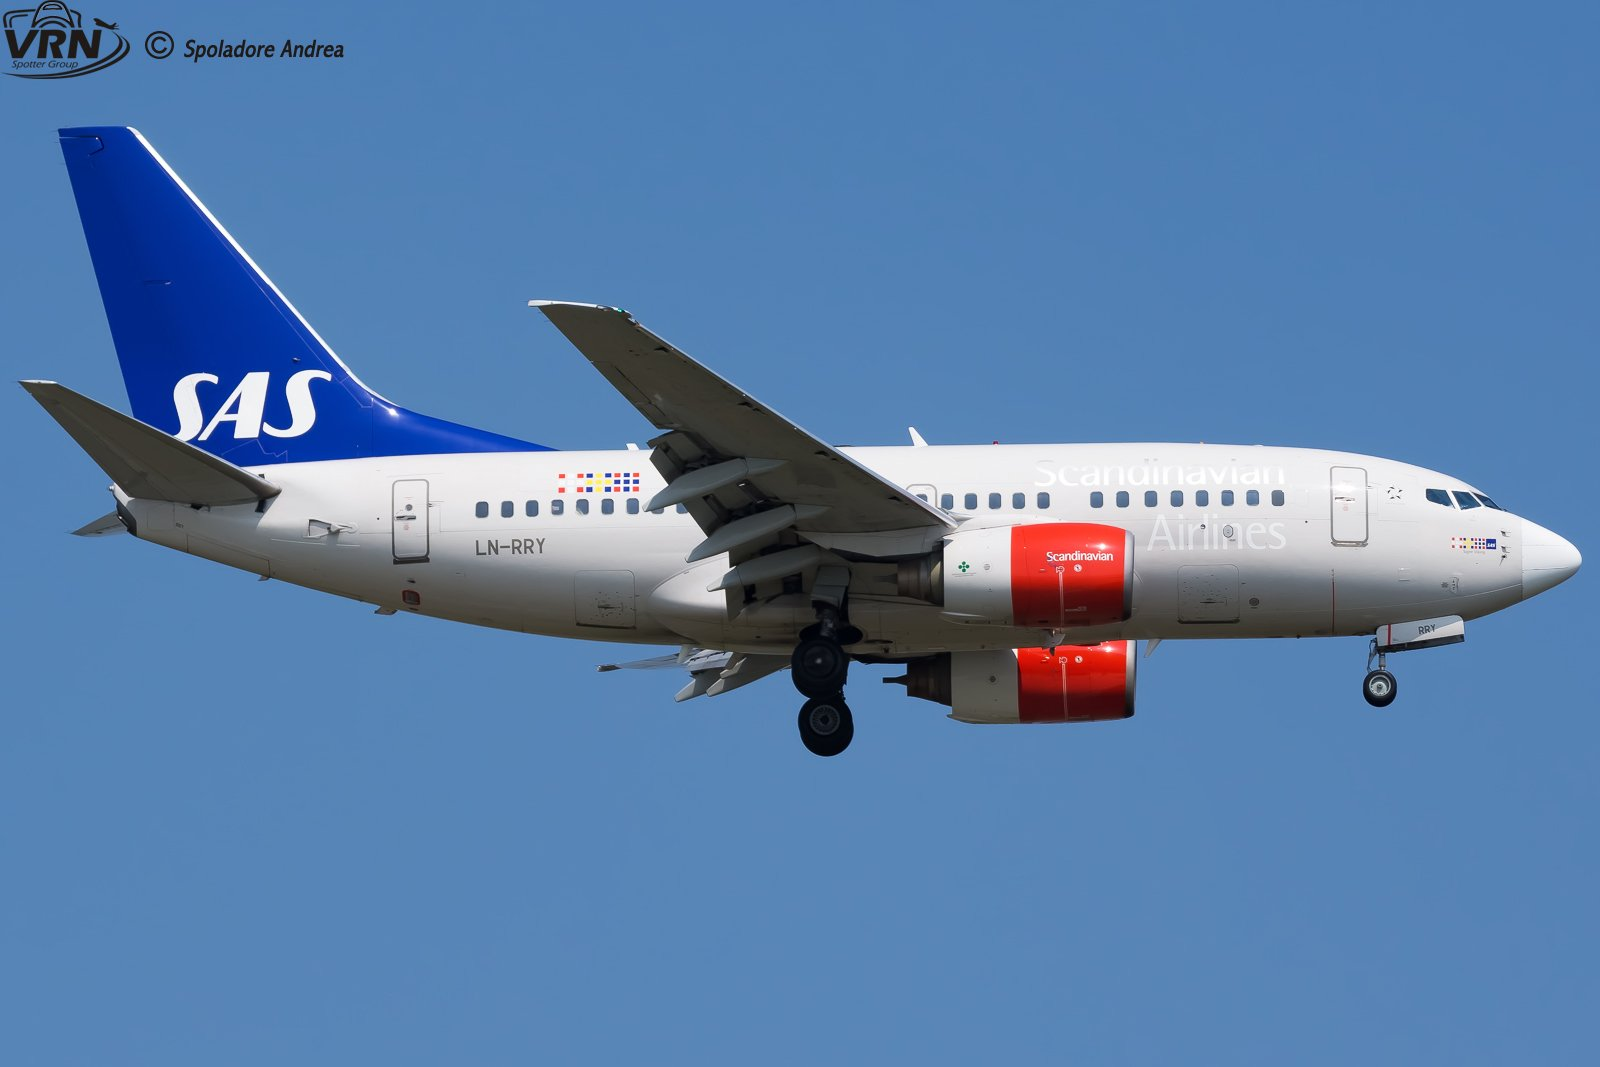 20170624-LN-RRY-SCANDINAVIAN AIRLINES-VCE-SPOLADORE ANDREA